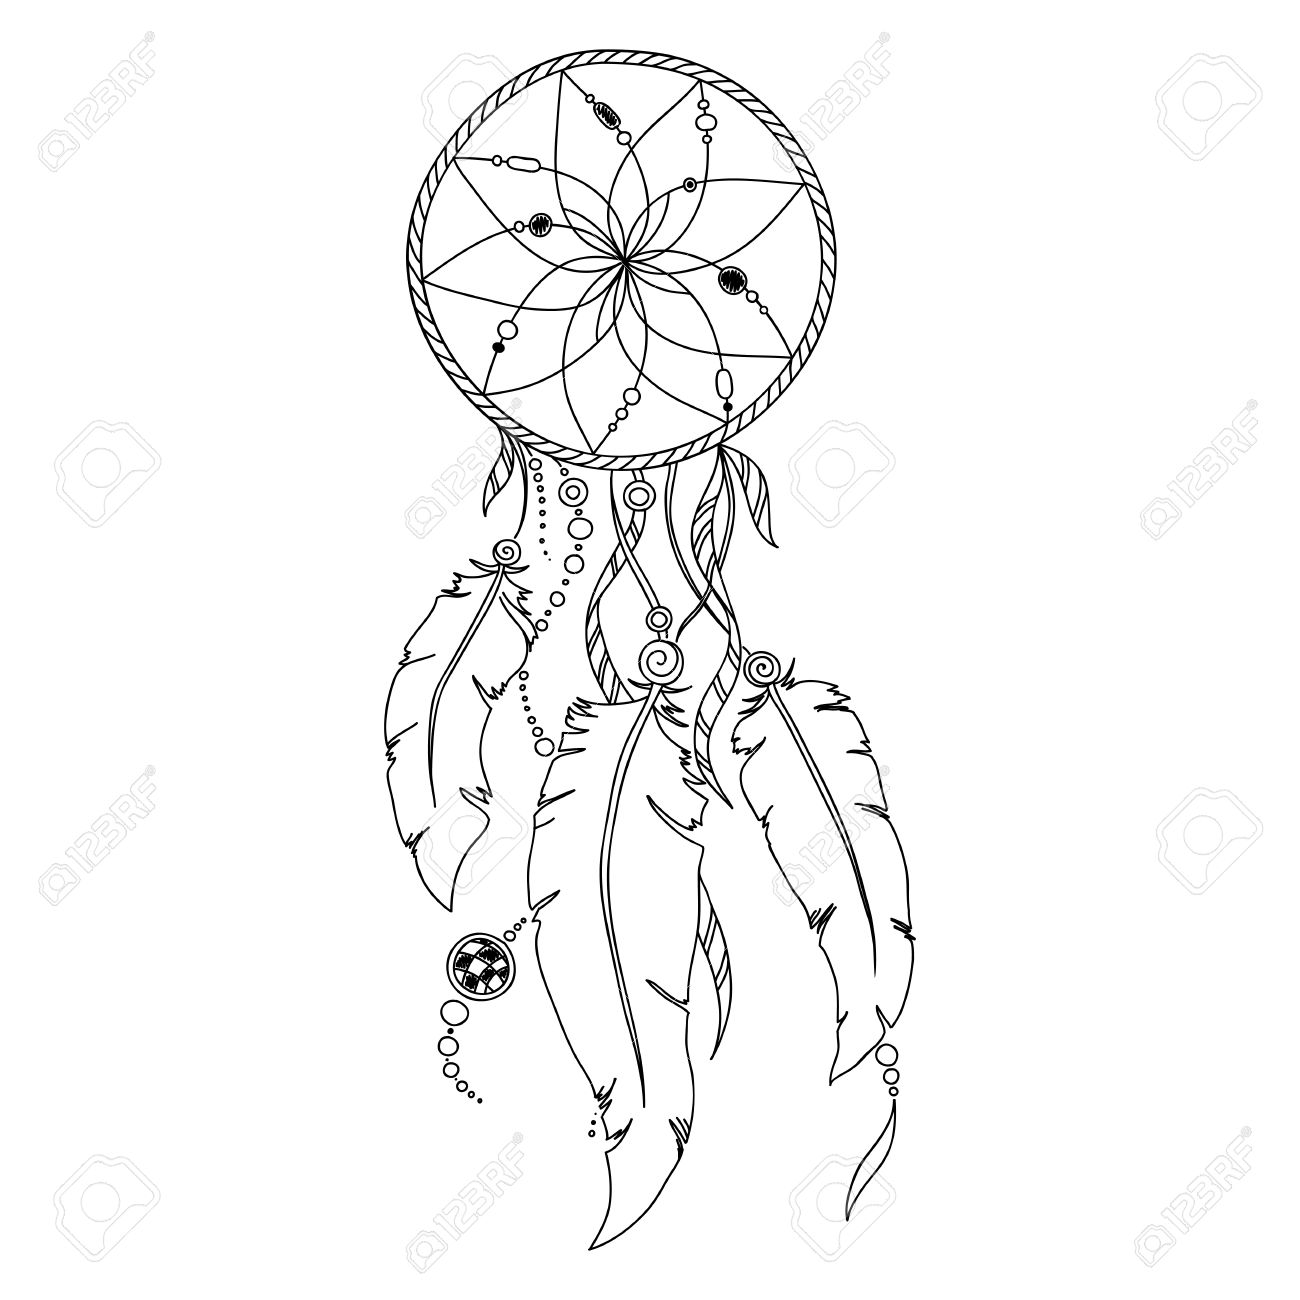 803d76f65 ... Mehndi Tattoo Style Doodles. Pattern for coloring book. Coloring book  pages for kids and adults. Indian Dream catcher